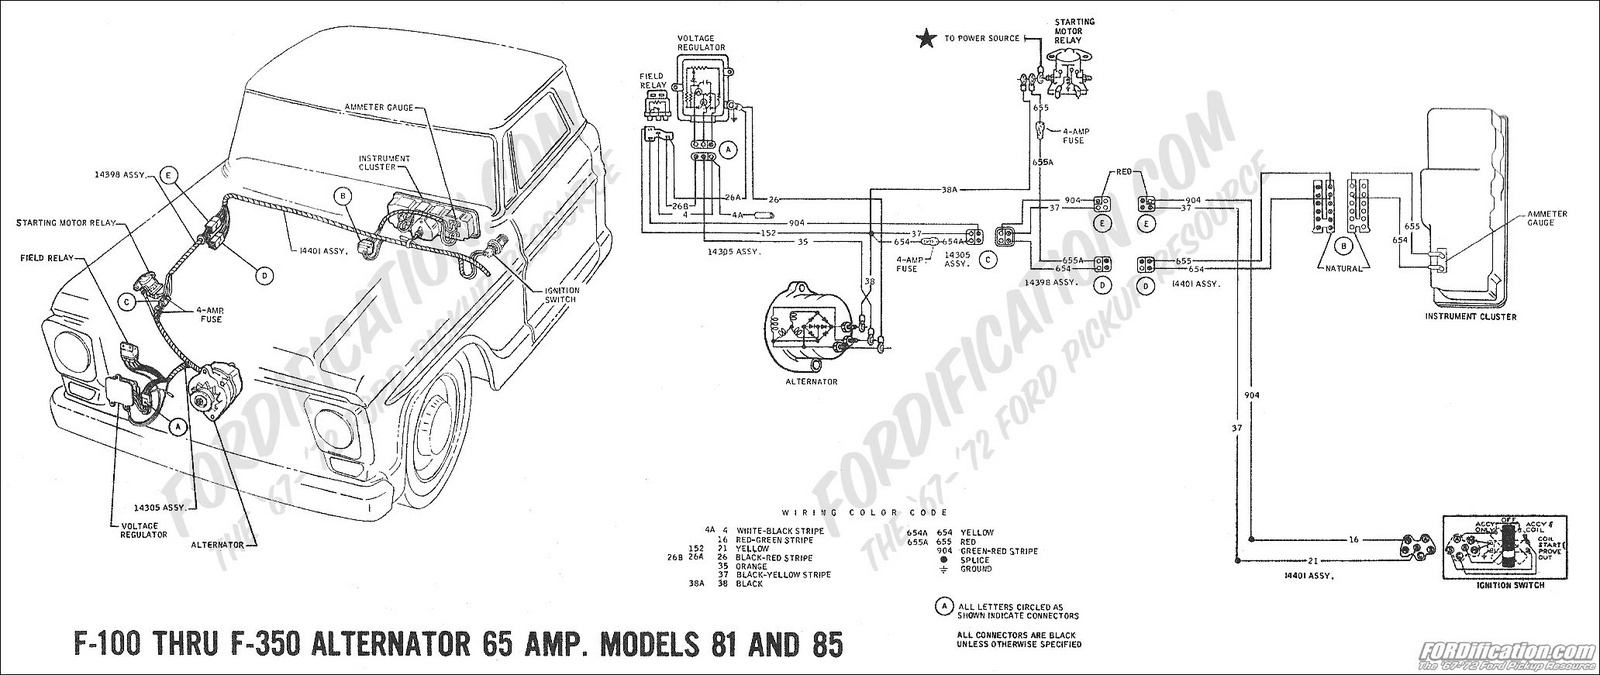 hight resolution of 1968 ford f 250 alternator wiring diagram simple wiring schema ford starter solenoid wiring diagram 1968 ford truck alternator wiring diagram